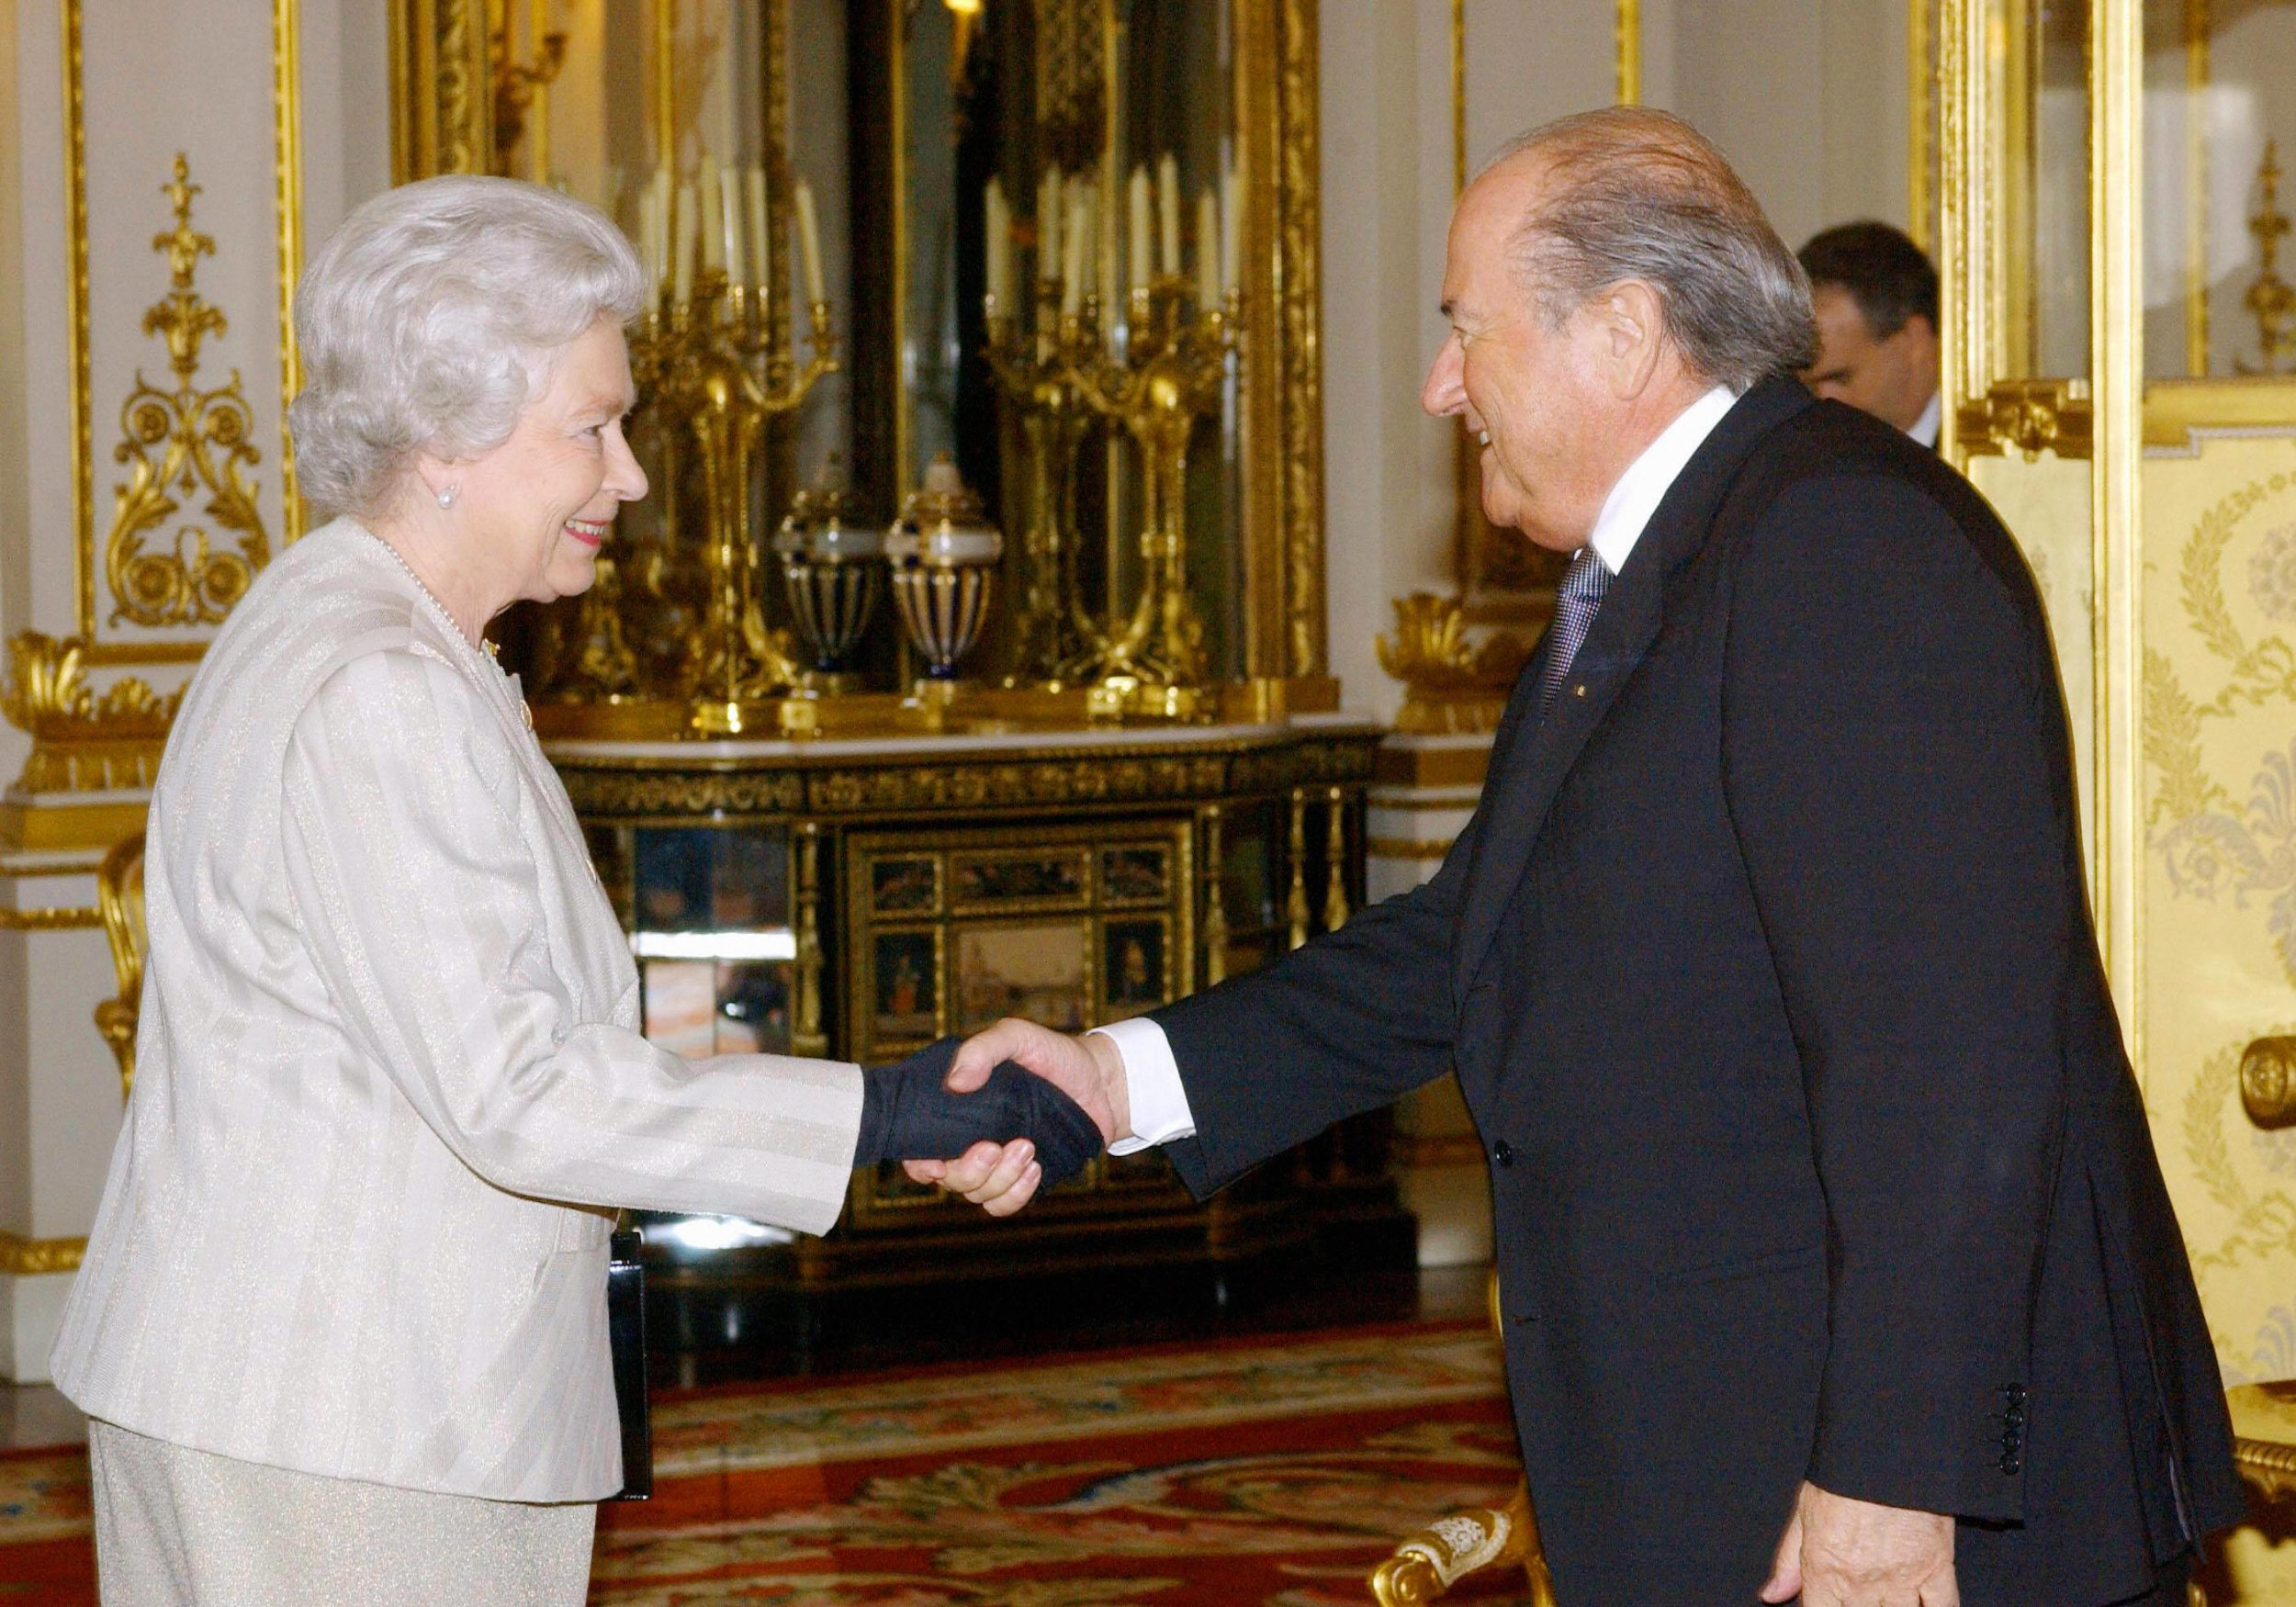 Queen Elizabeth II and Sepp Blatter.